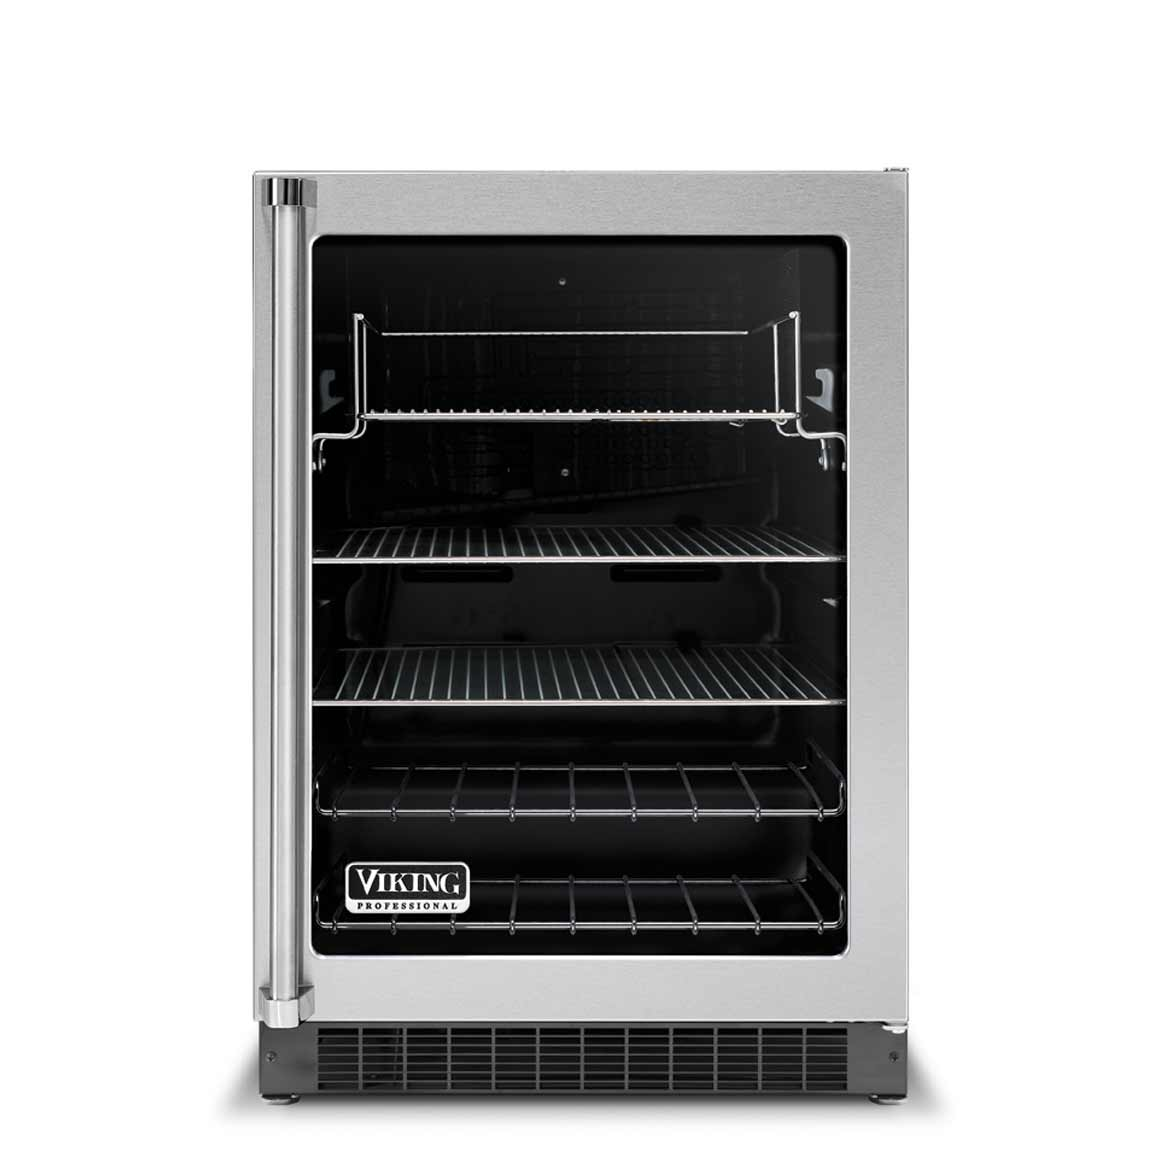 Viking beverage refrigerator reviews